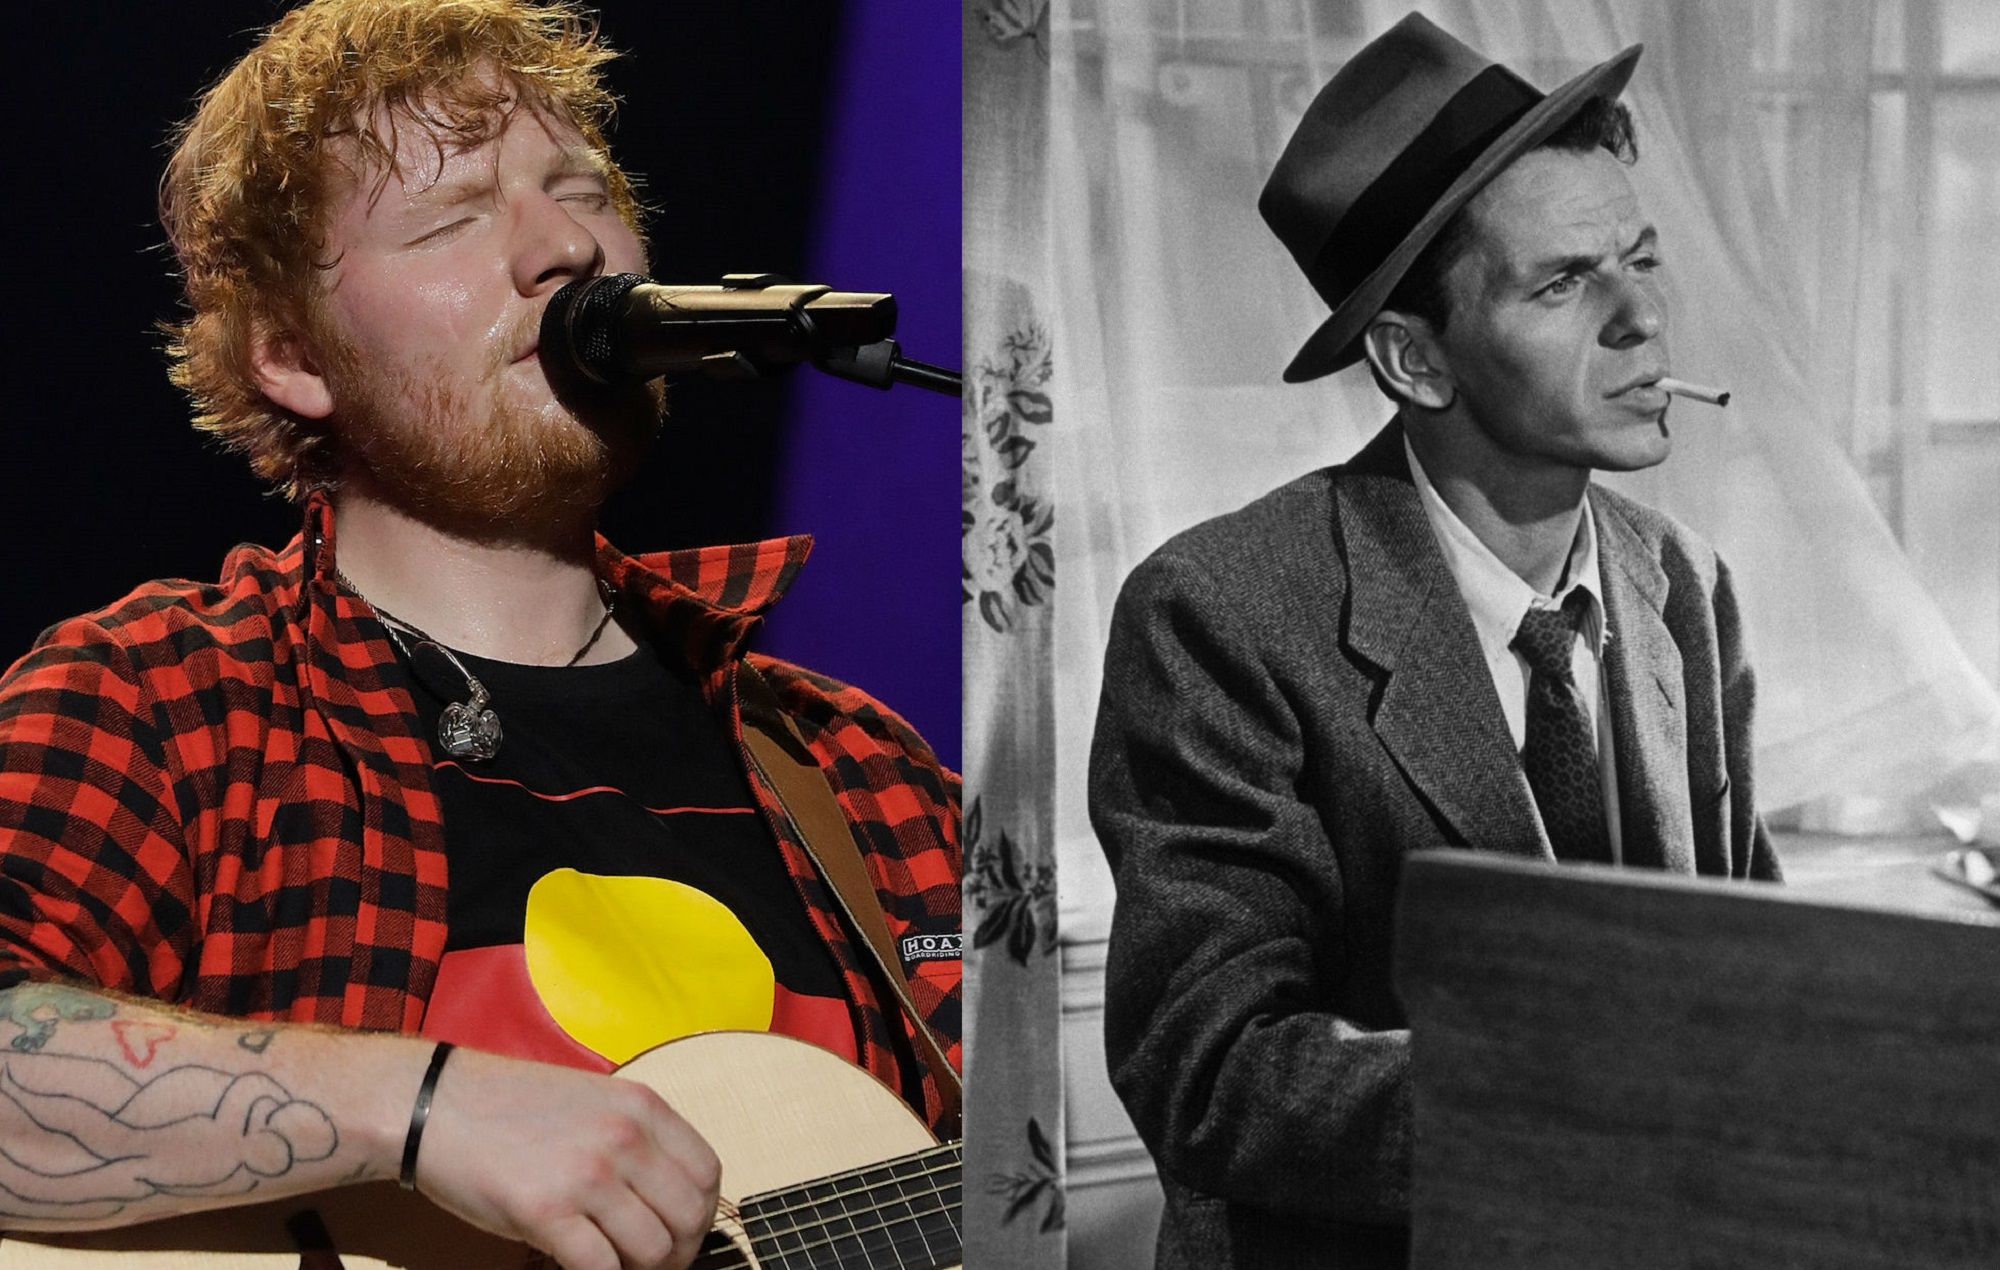 Ed Sheeran And Frank Sinatra Are The Most Popular Artists